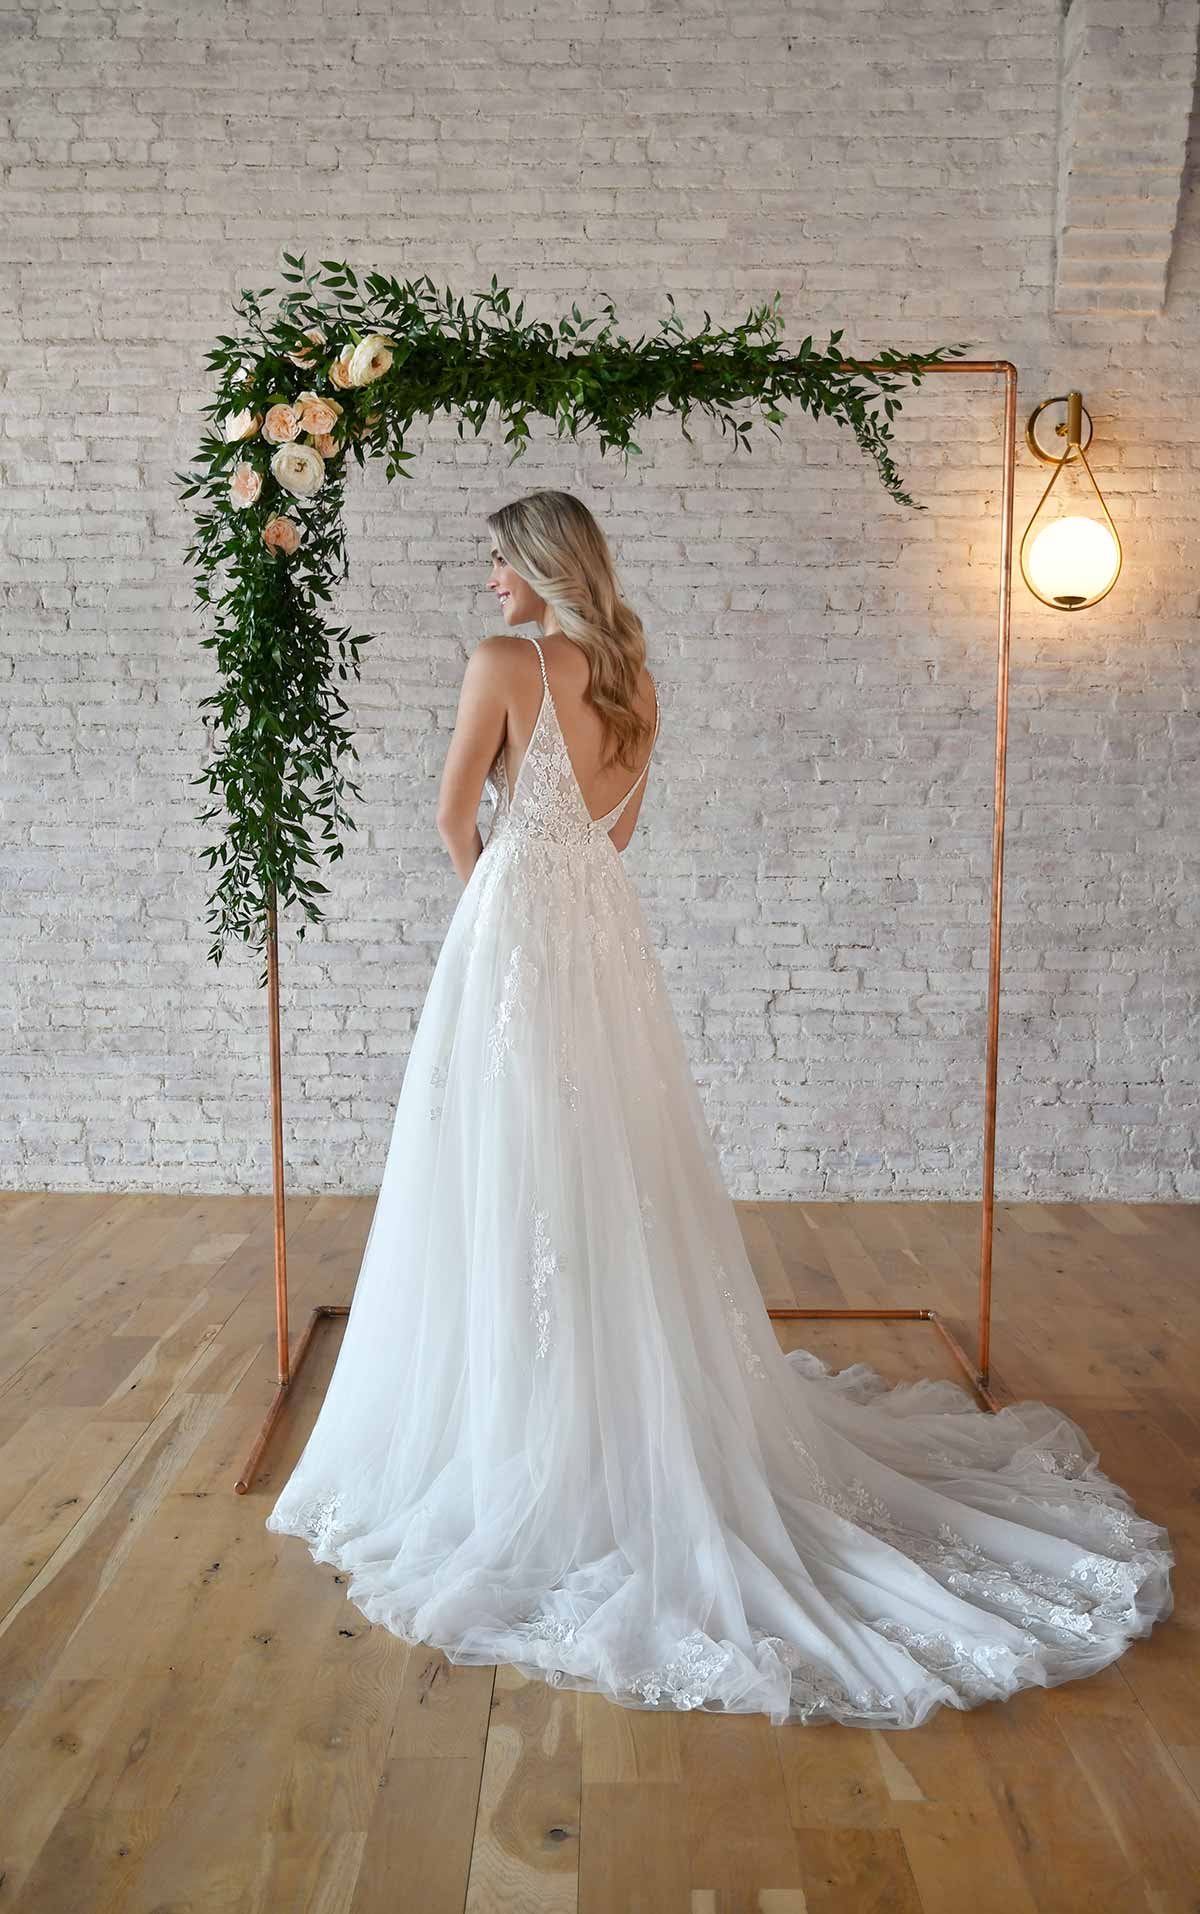 7193 Romantic Lace Wedding Dress with Sheer Bodice by Stella York